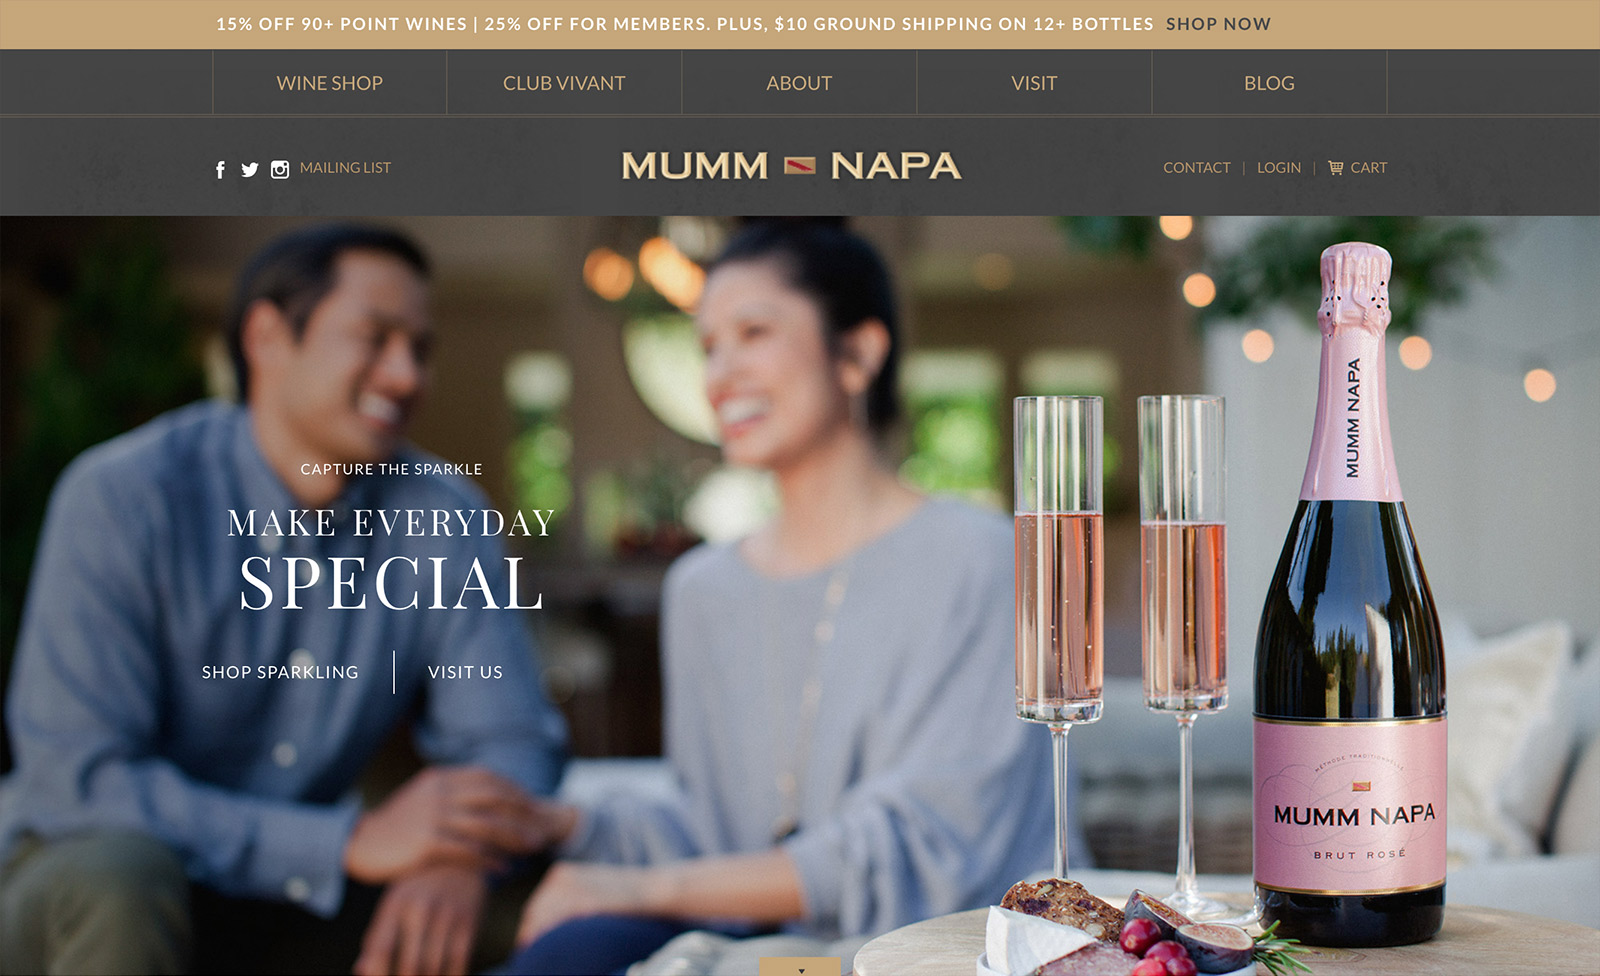 The website for Mumm Napa